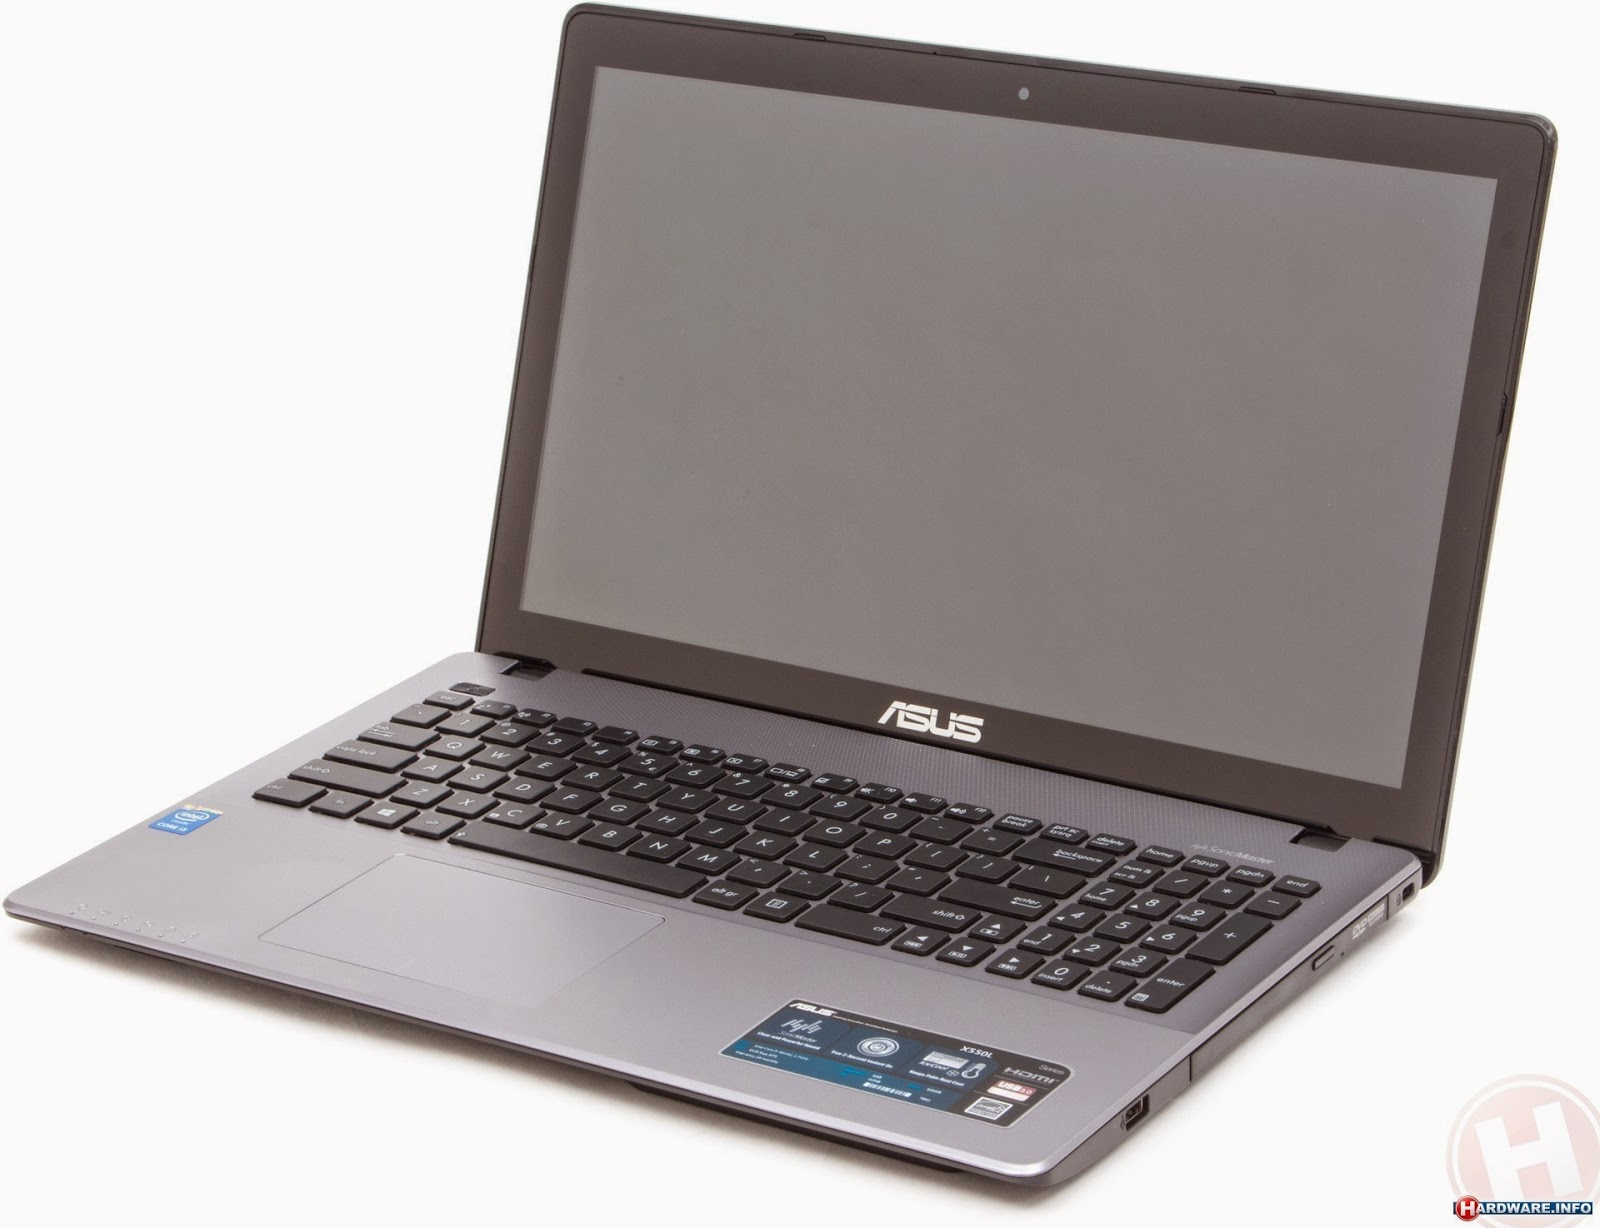 Asus X52f Drivers For Windows 10